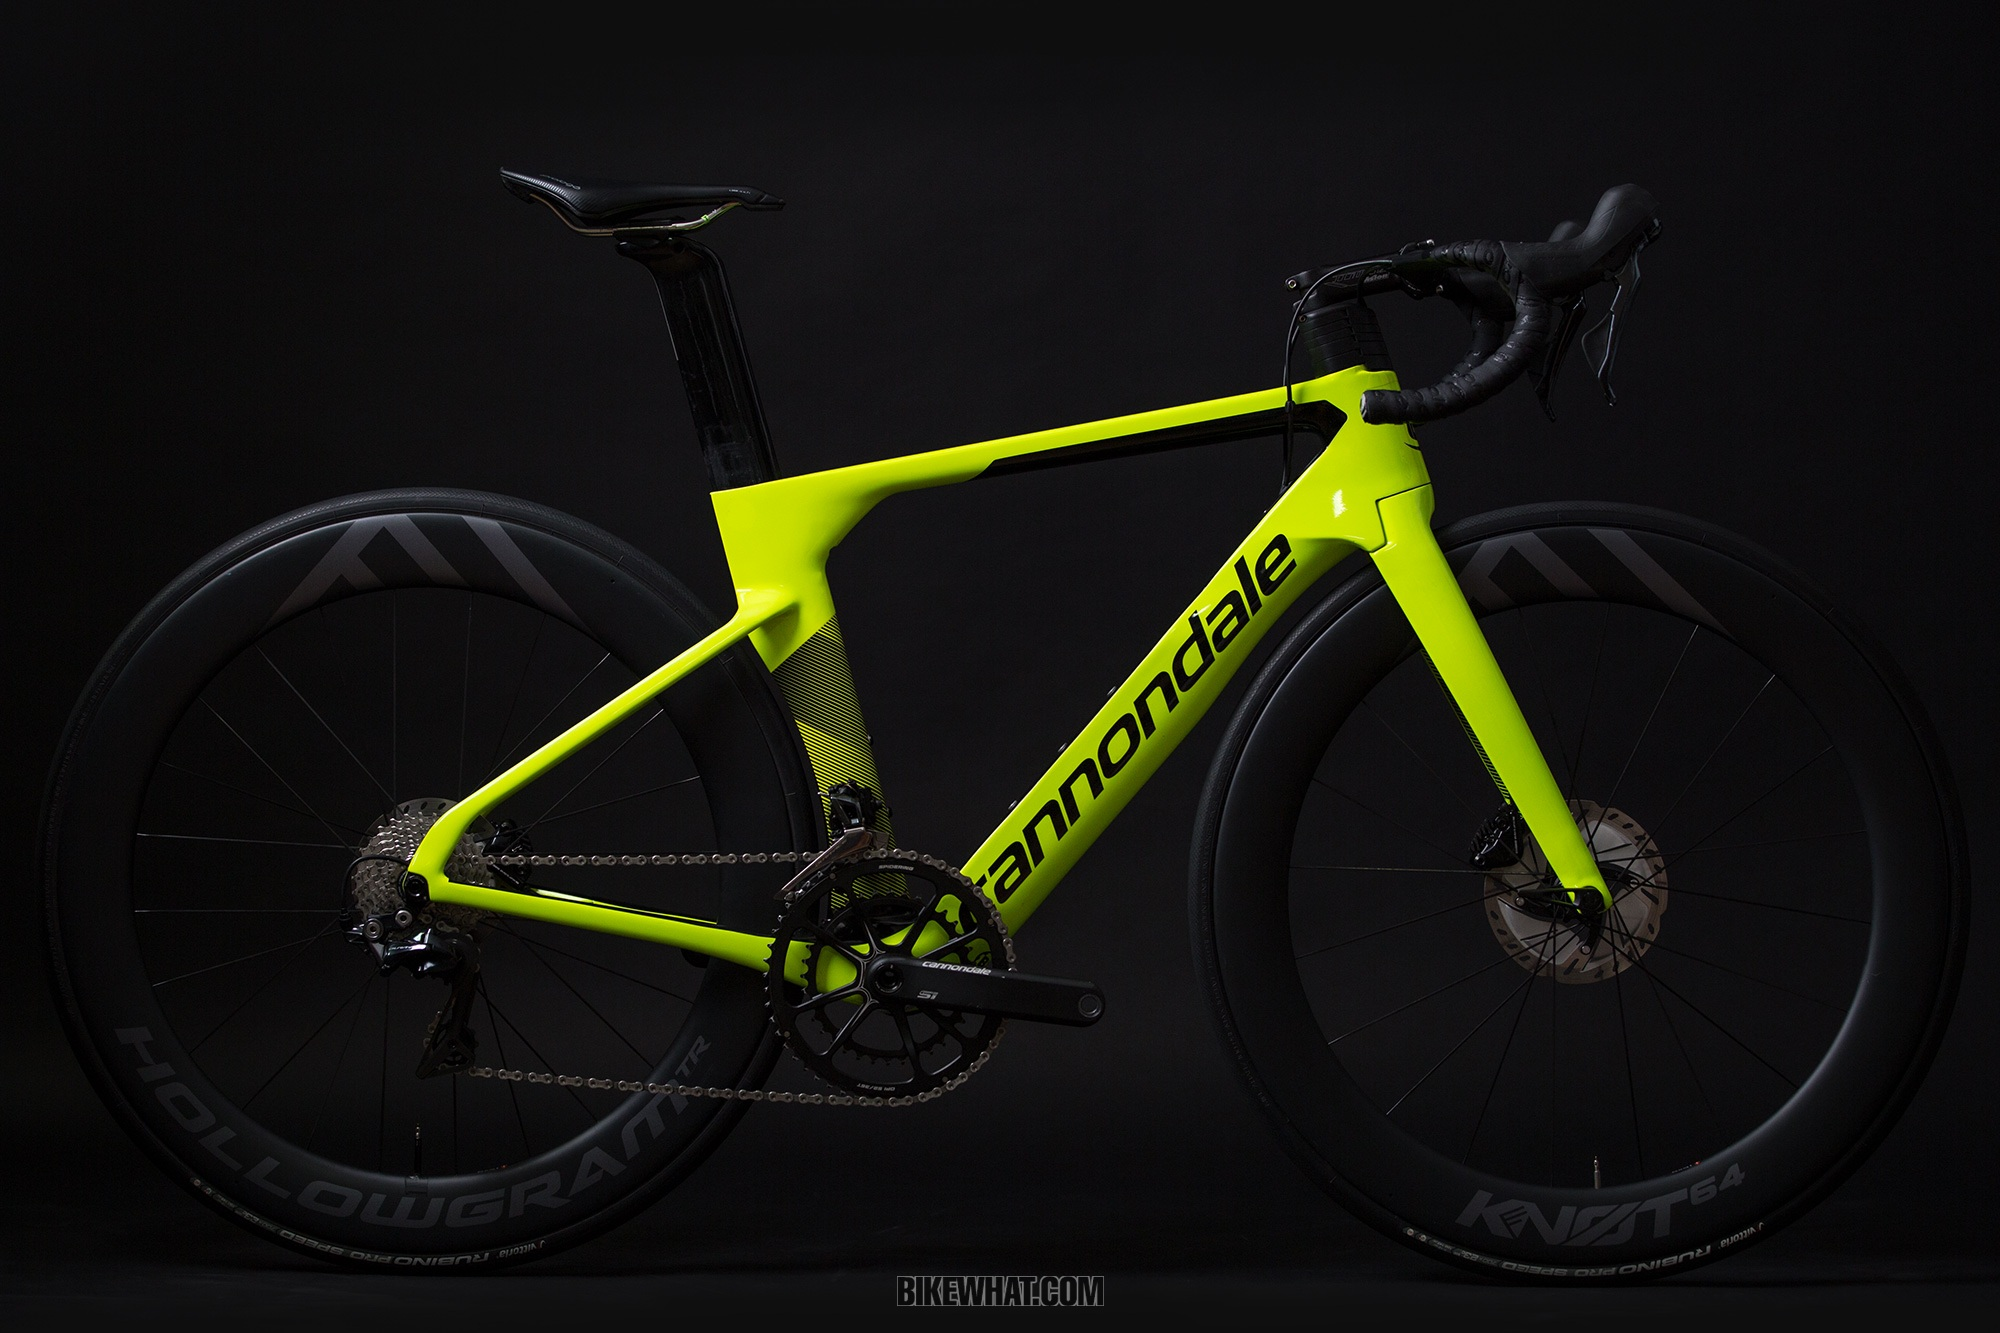 testride_cannondale_systemsix_01.jpg